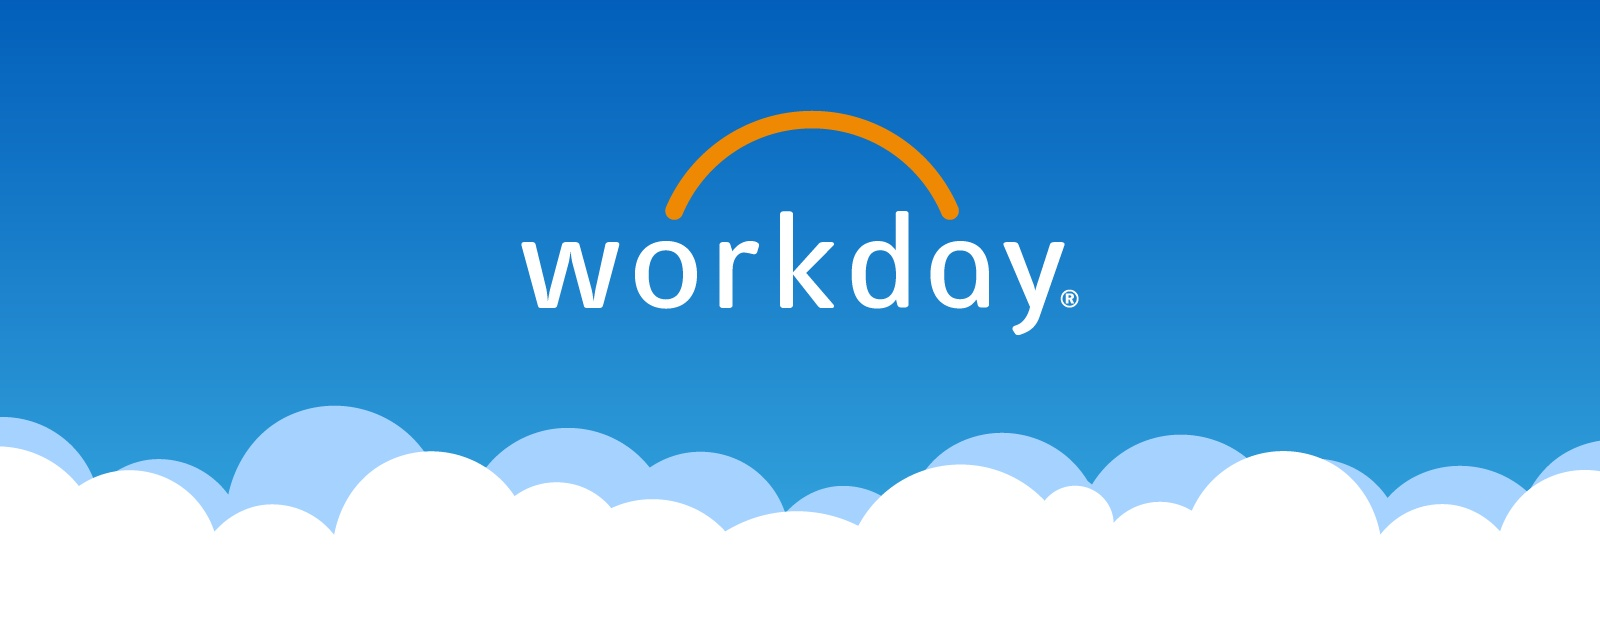 Workday Meets Growing Customer Demand with Record Number of Deployments